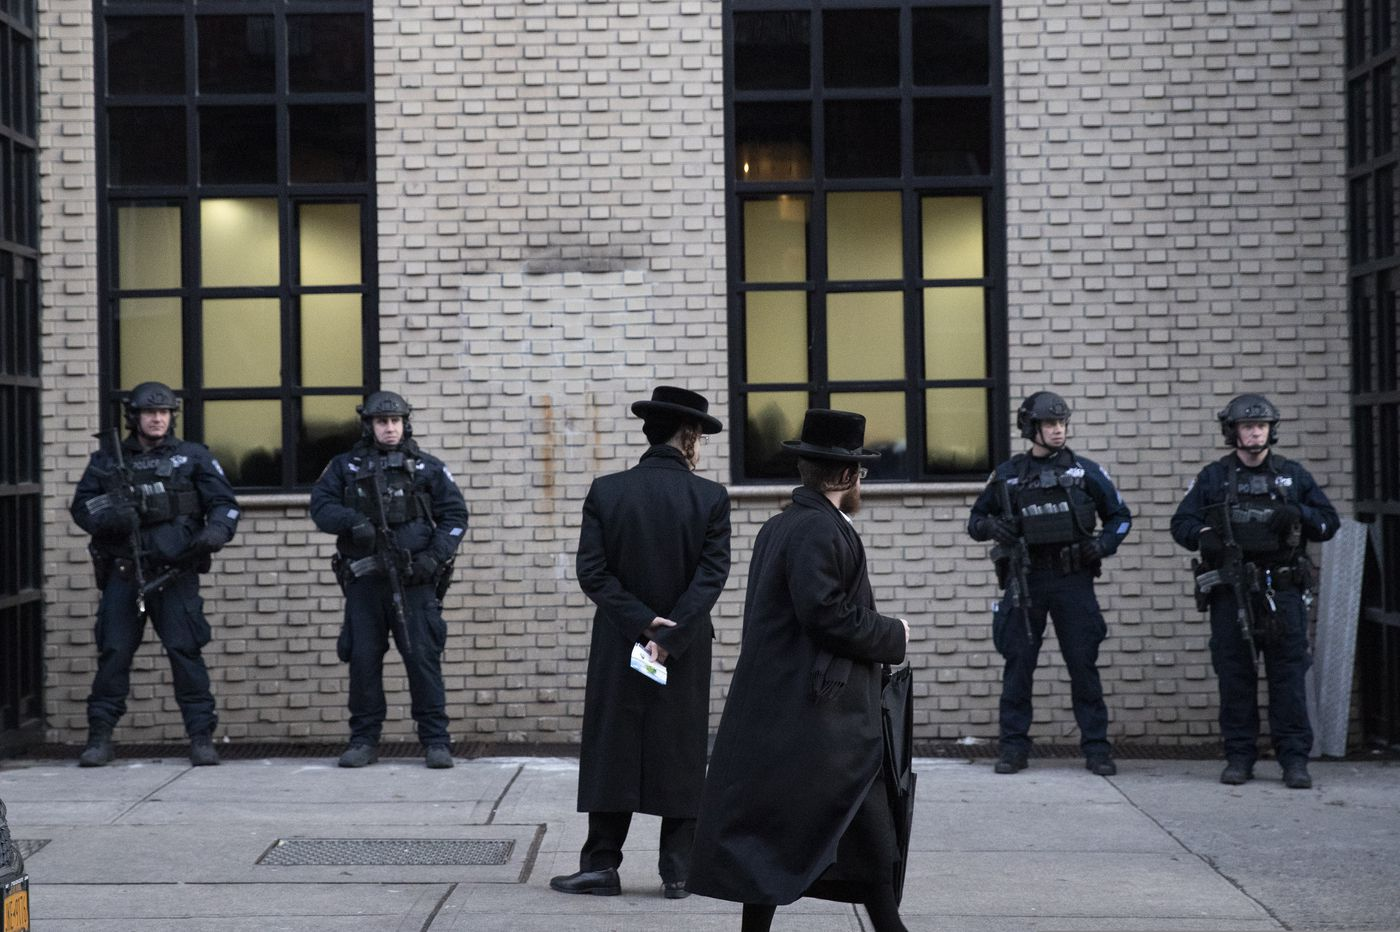 Anti-Semitism and hatred of police motivated the Jersey City shooters, AG says